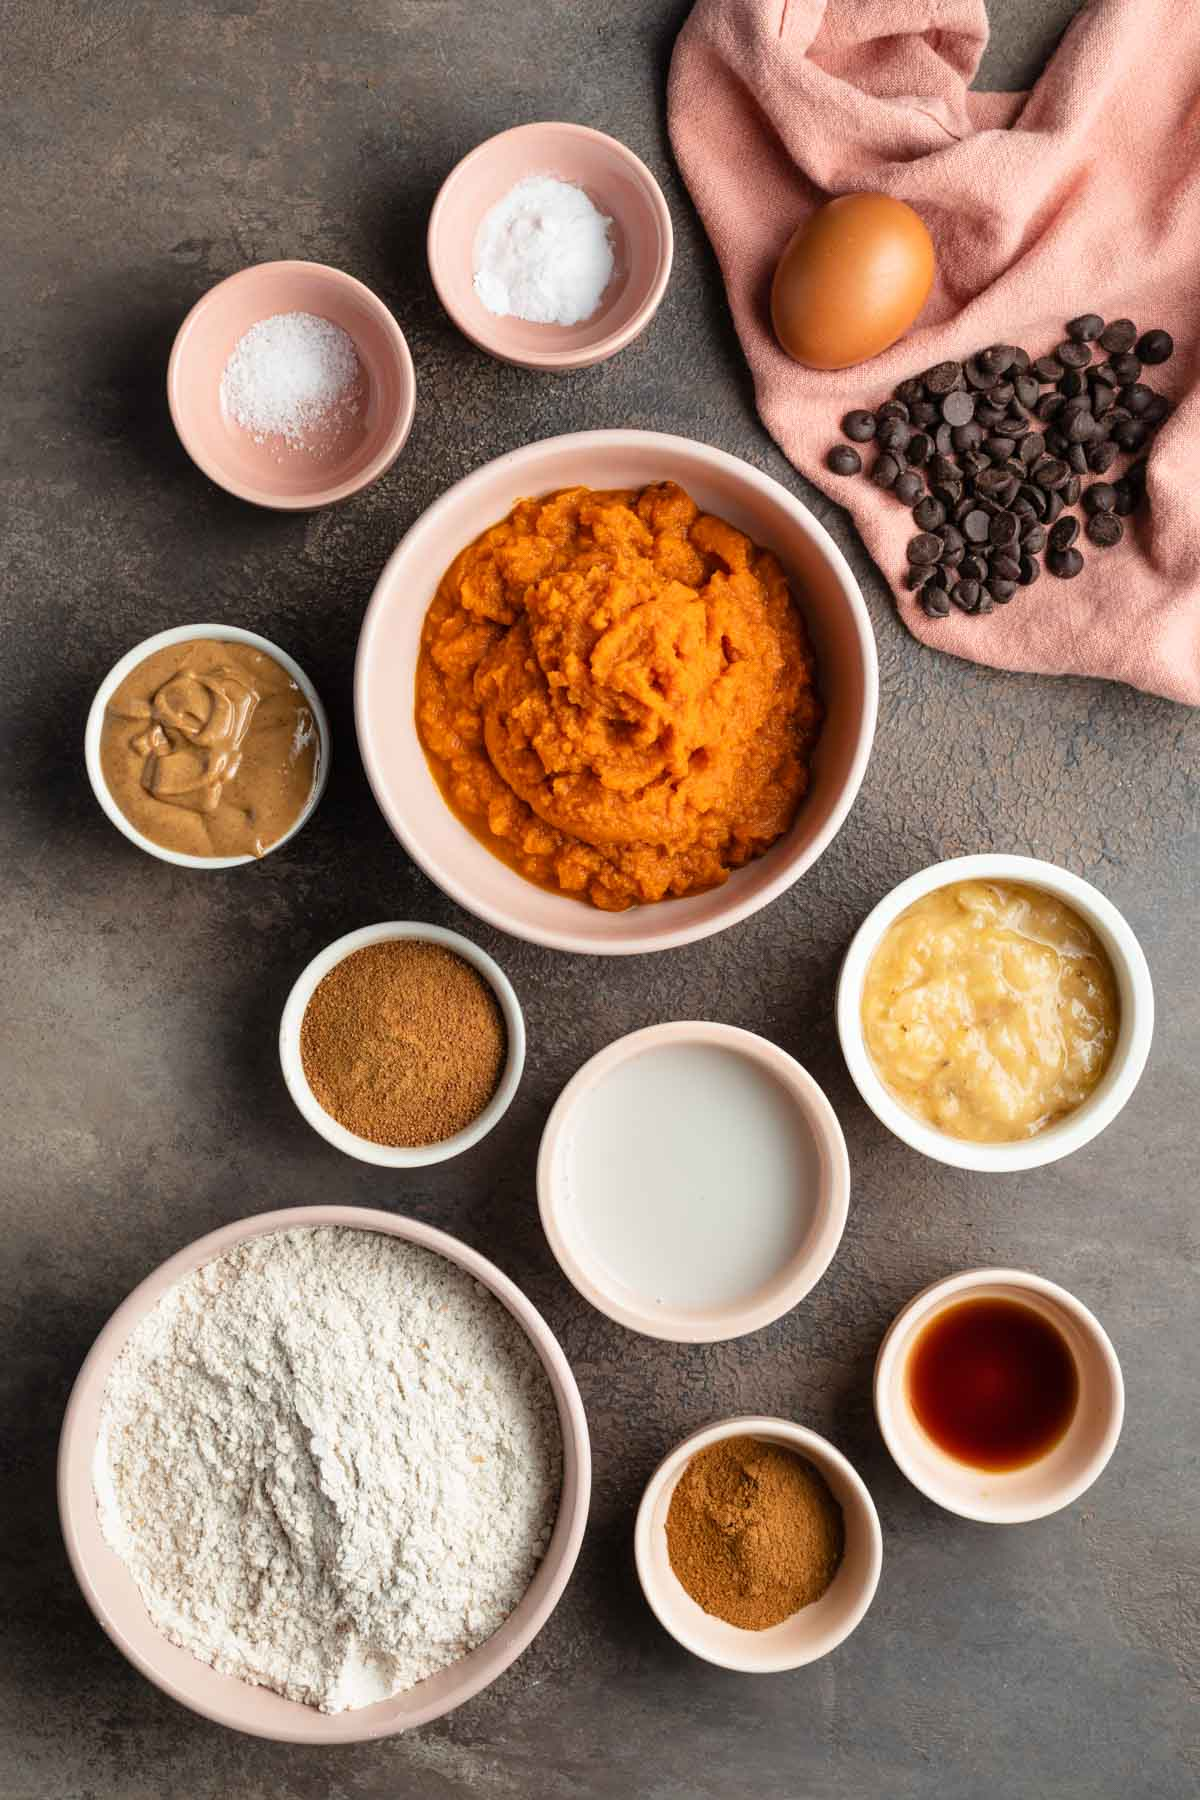 Ingredients to make whole wheat pumpkin muffins arranged in individual bowls.